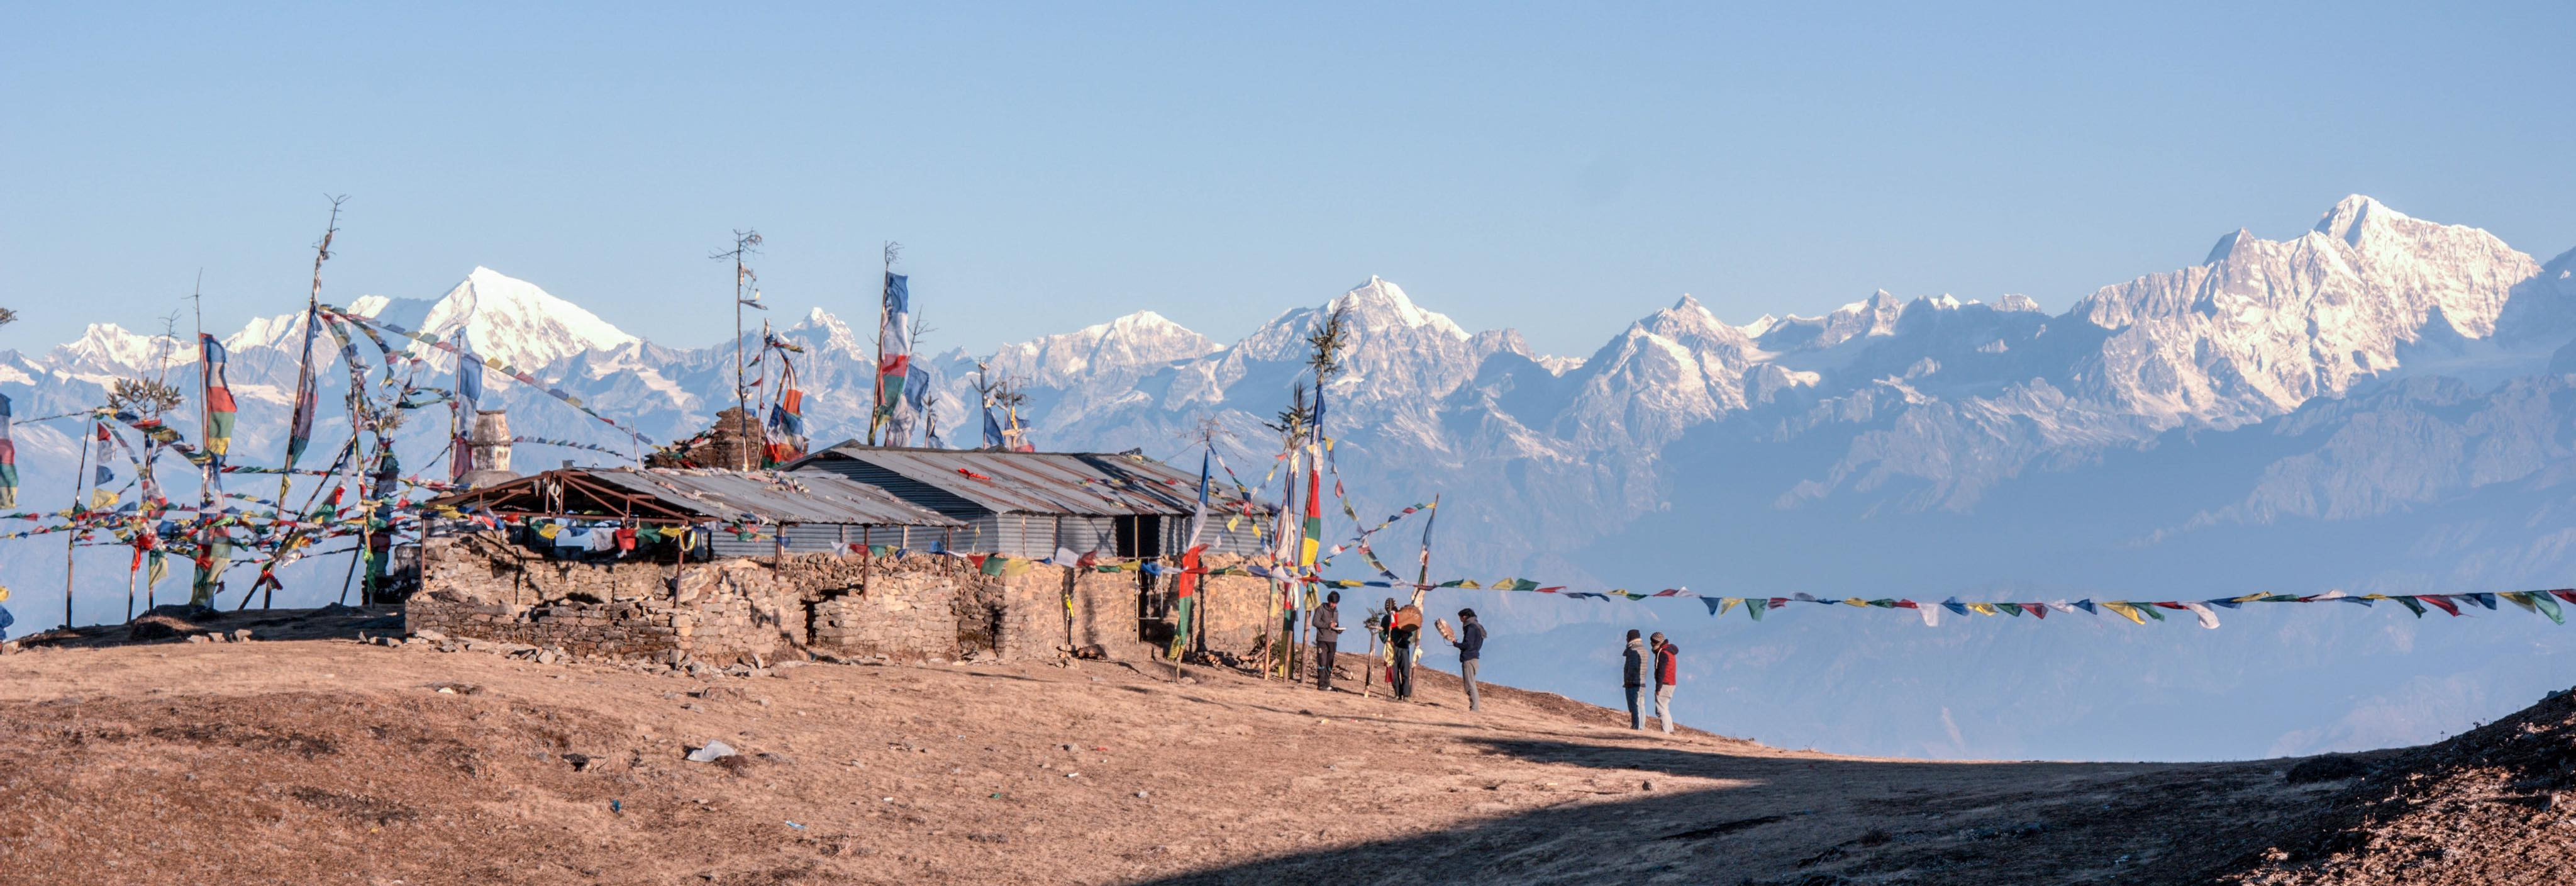 Indigenous Peoples Trail Nepal Home-Stay Trek, 12 Days